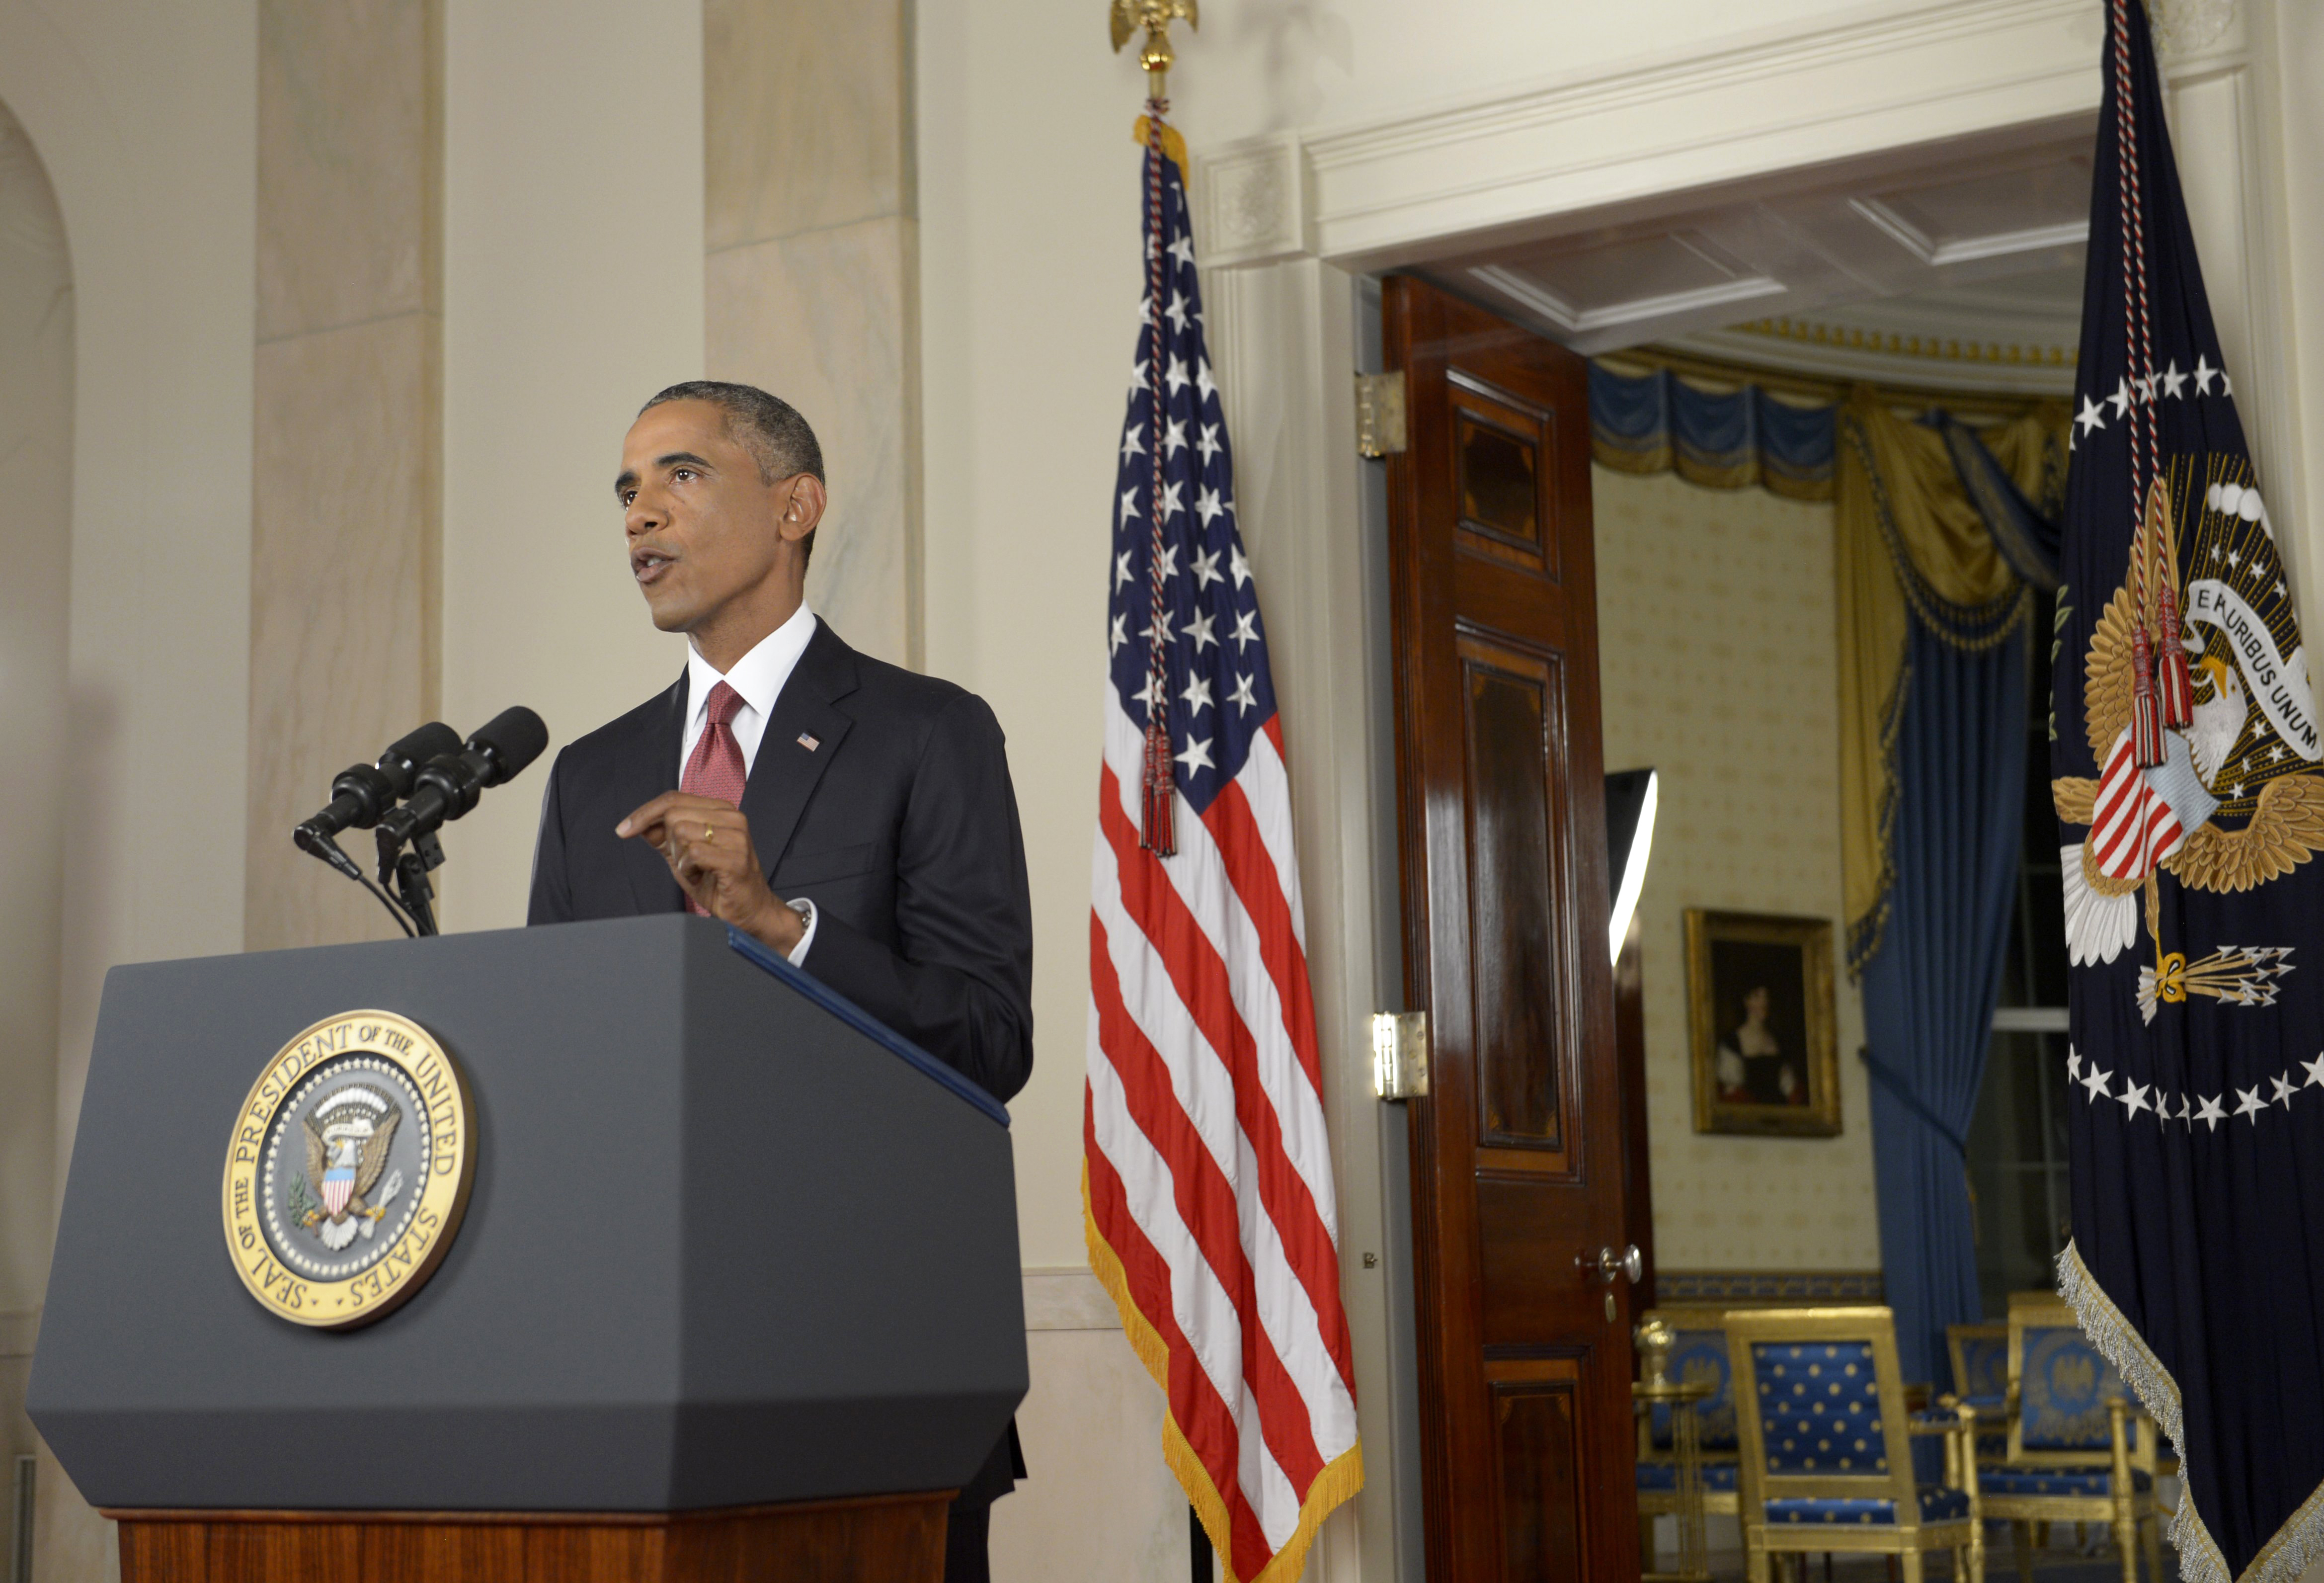 President Obama Delivers An Address To The Nation